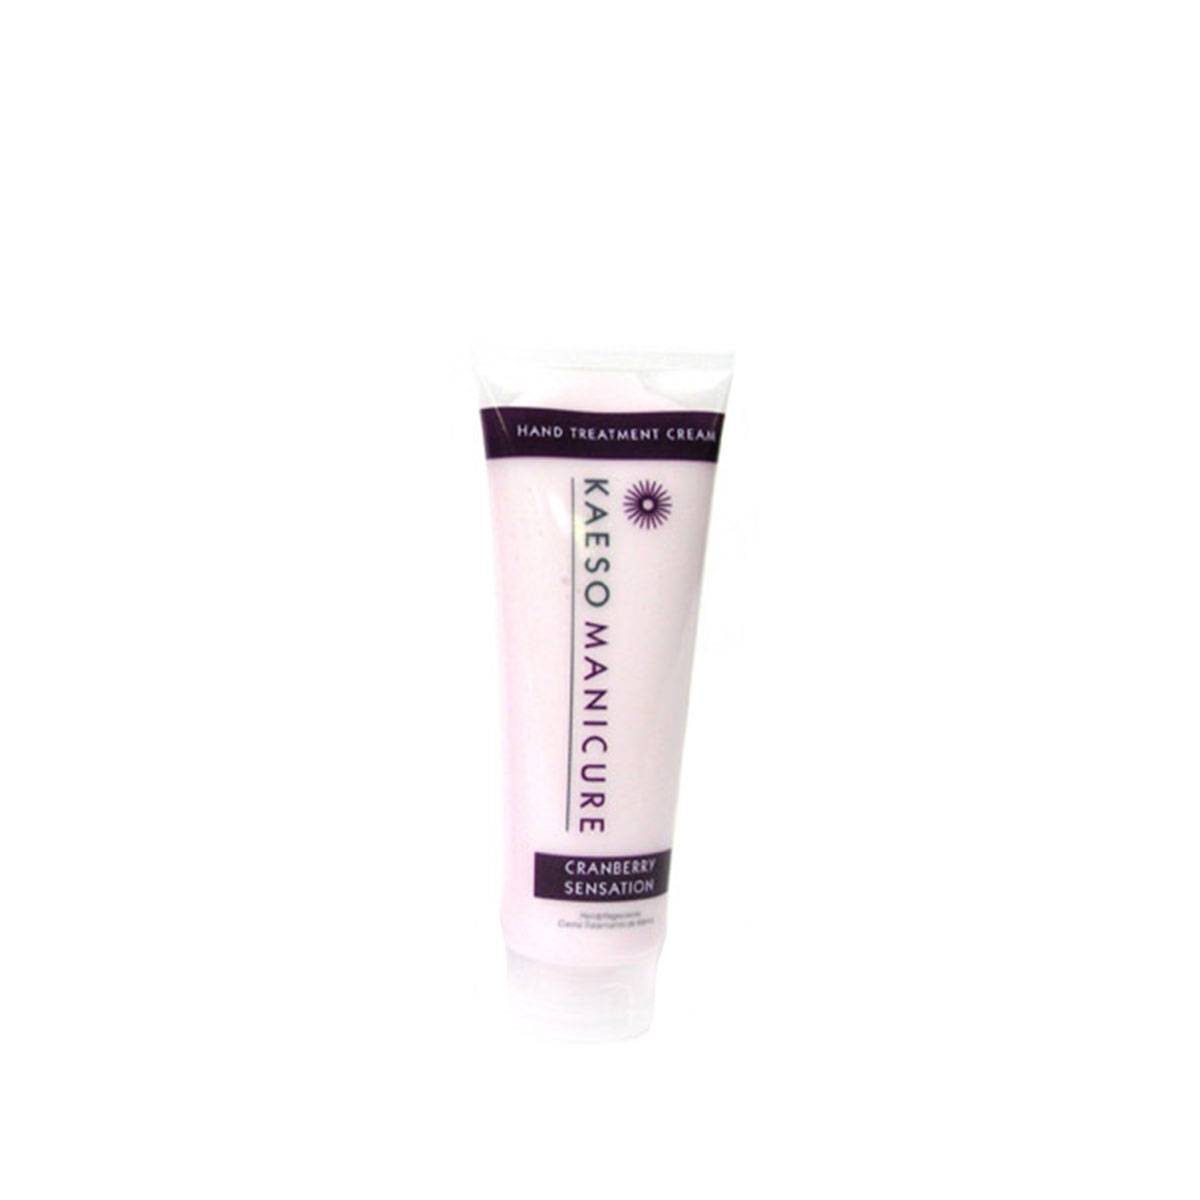 Cranberry Sensation Hand Treatment Cream